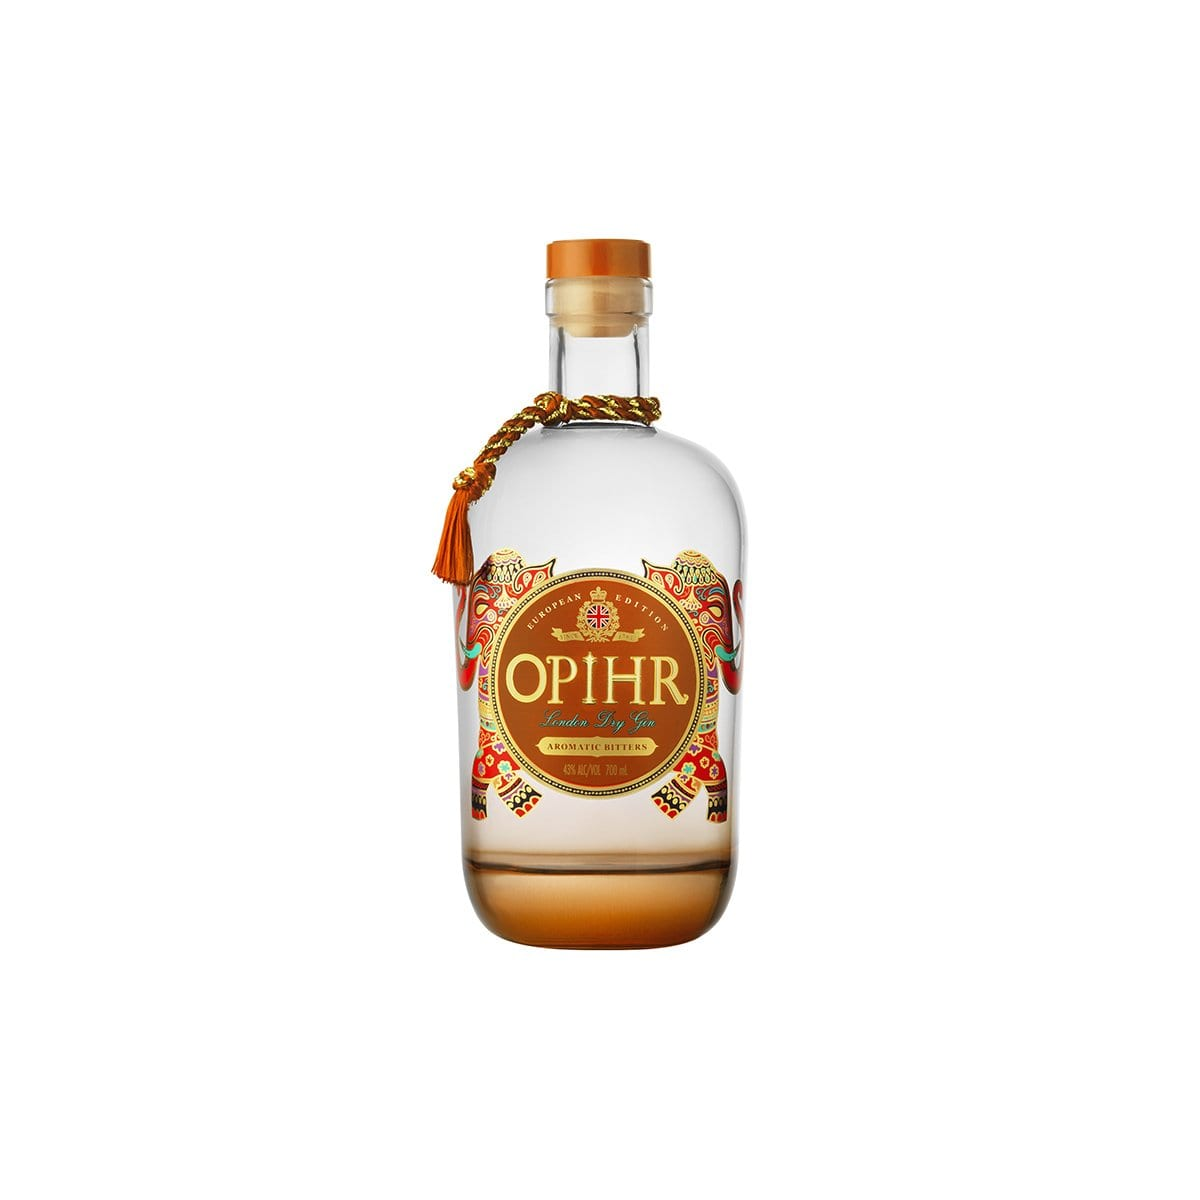 OPIHR European Edition Gin